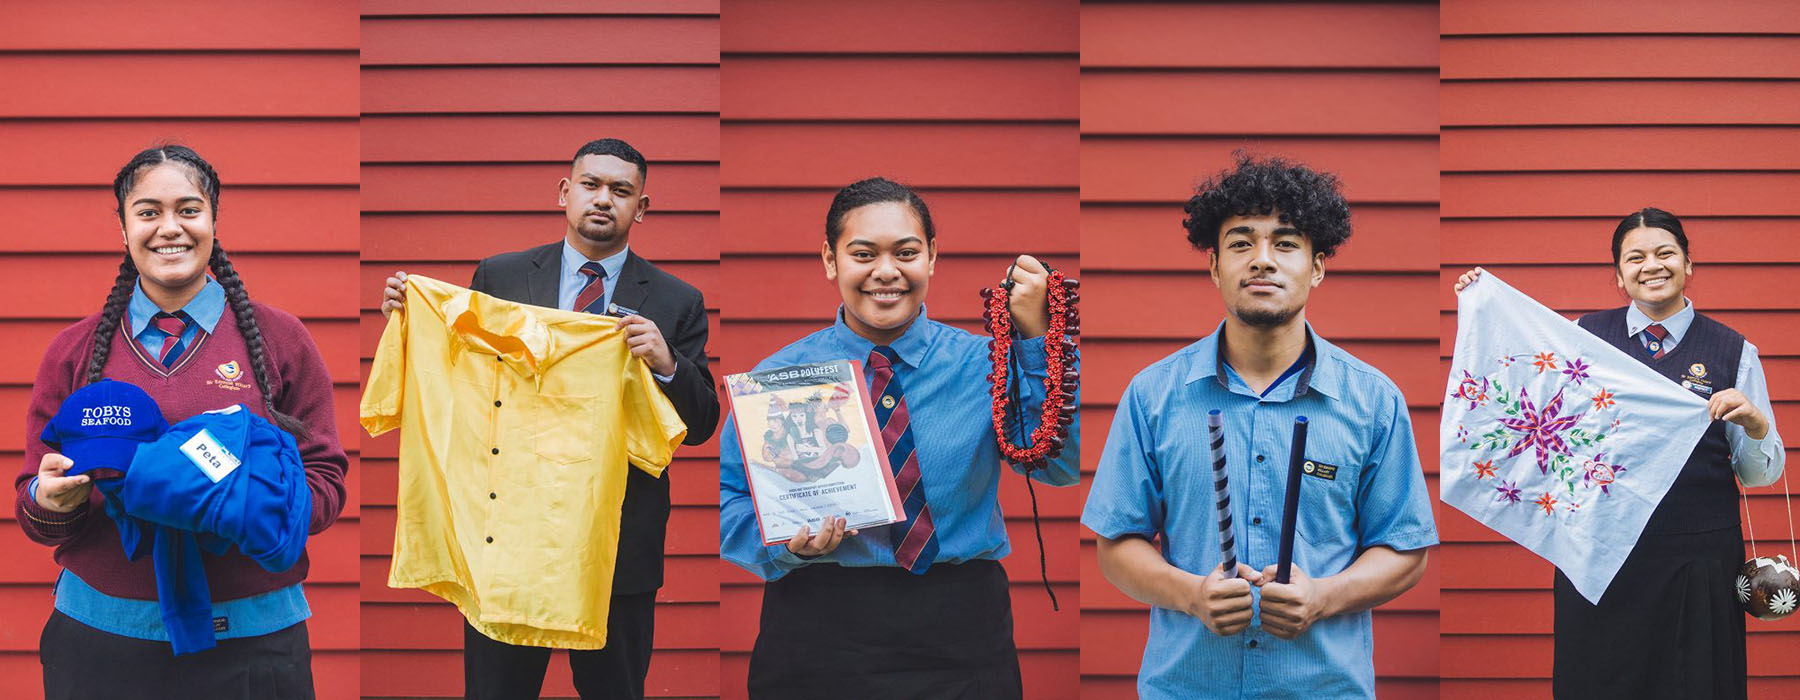 Composite of five photos of three young women and two young men holding their objects for the co-collecting project. They are holding a seafood shop uniform, a yellow shirt, a necklace, drum sticks, and a pillowcase